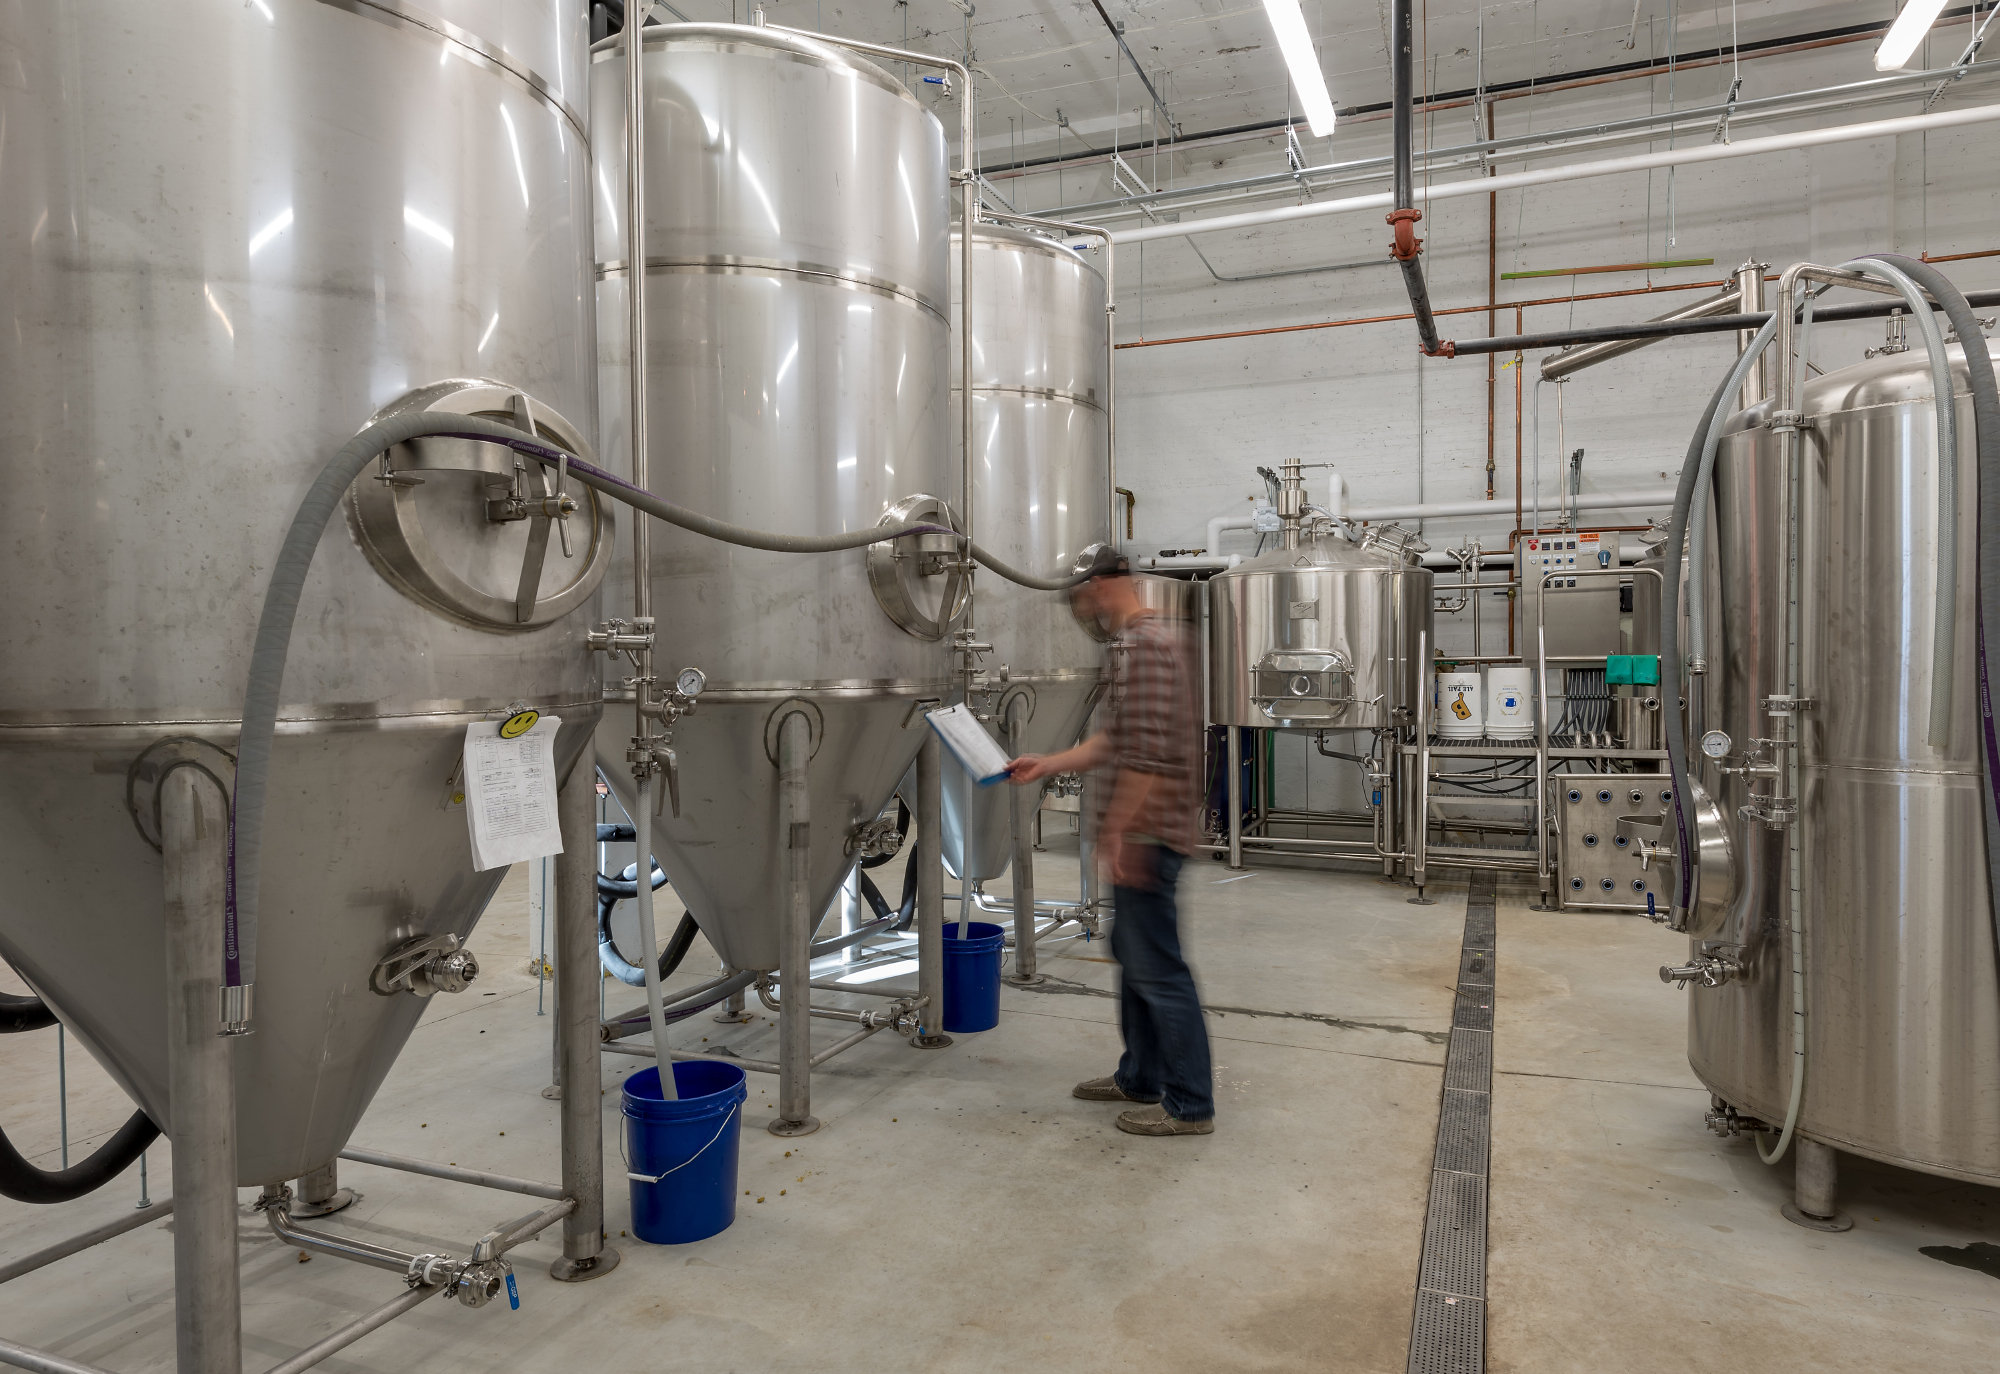 diamondback-interior-brewroom-3.jpg